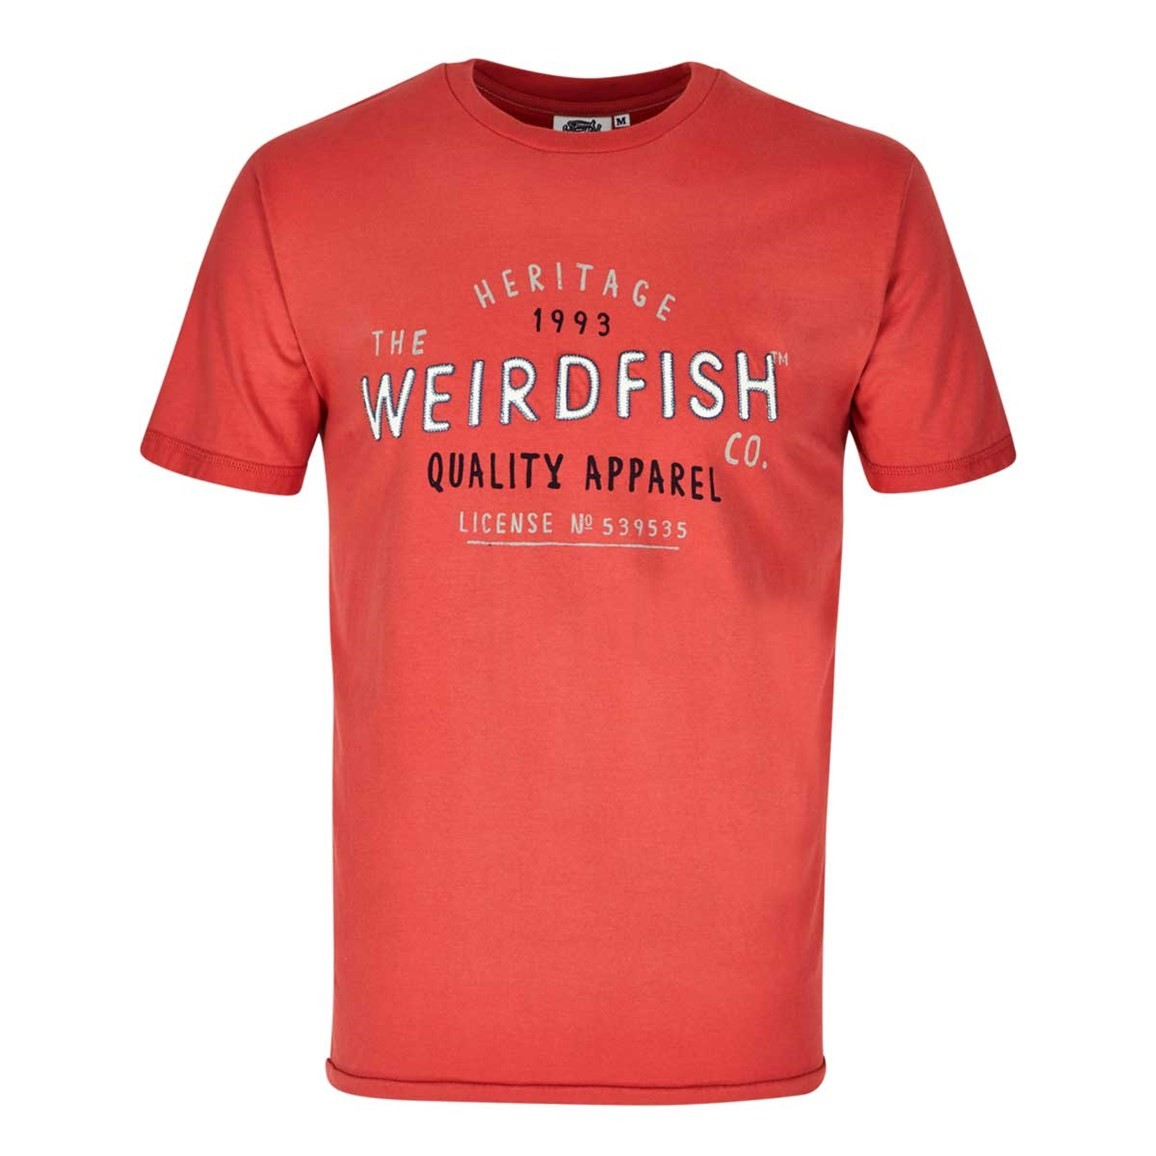 Weird Fish Heritage Applique & Graphic Print Cotton T-Shirt Baked Apple